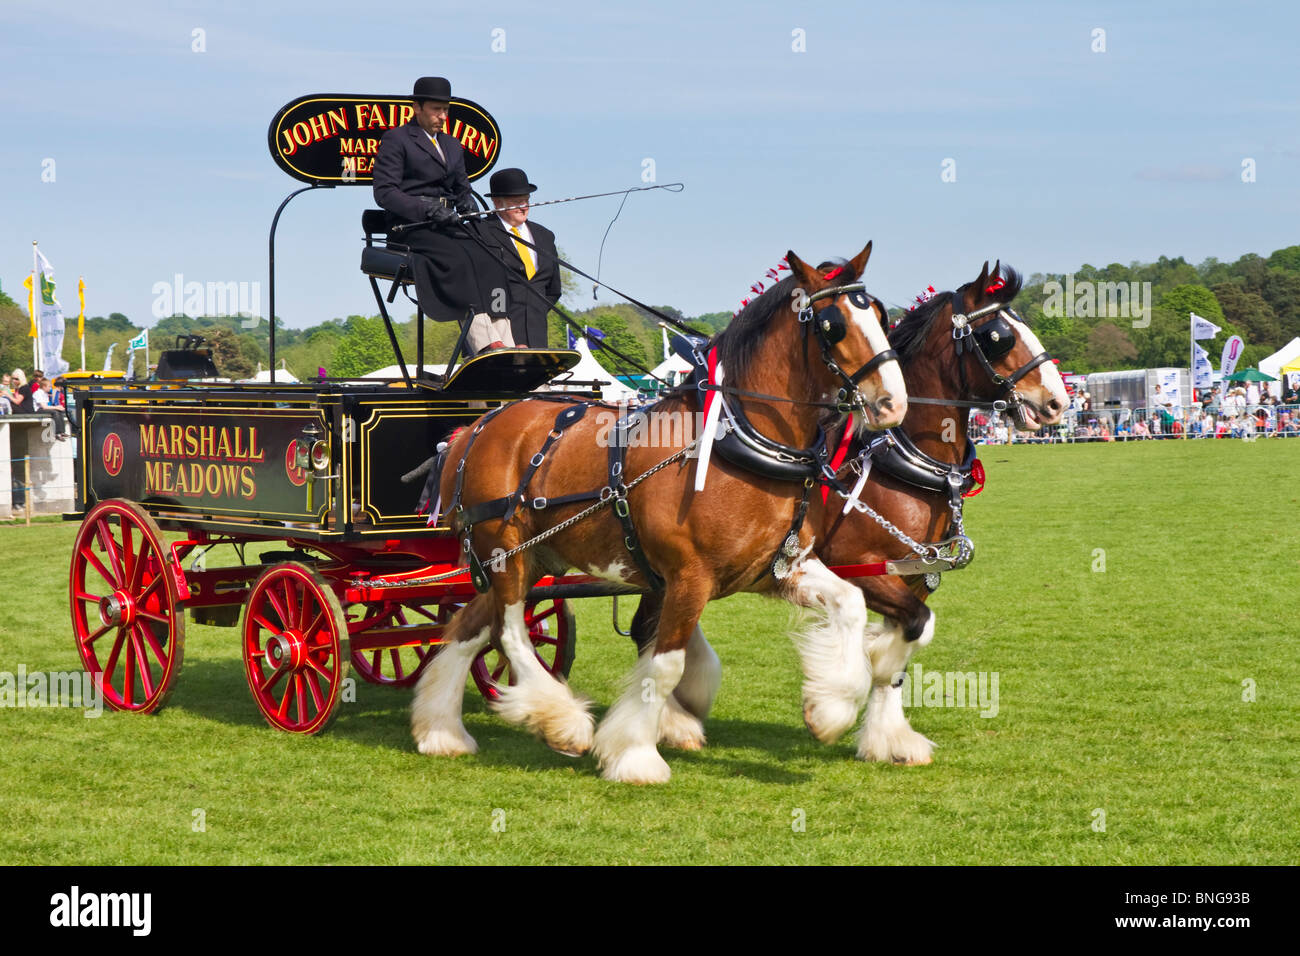 Display of 'heavy horses' at the 2010 Northumberland County Show held in Corbridge, England - Stock Image